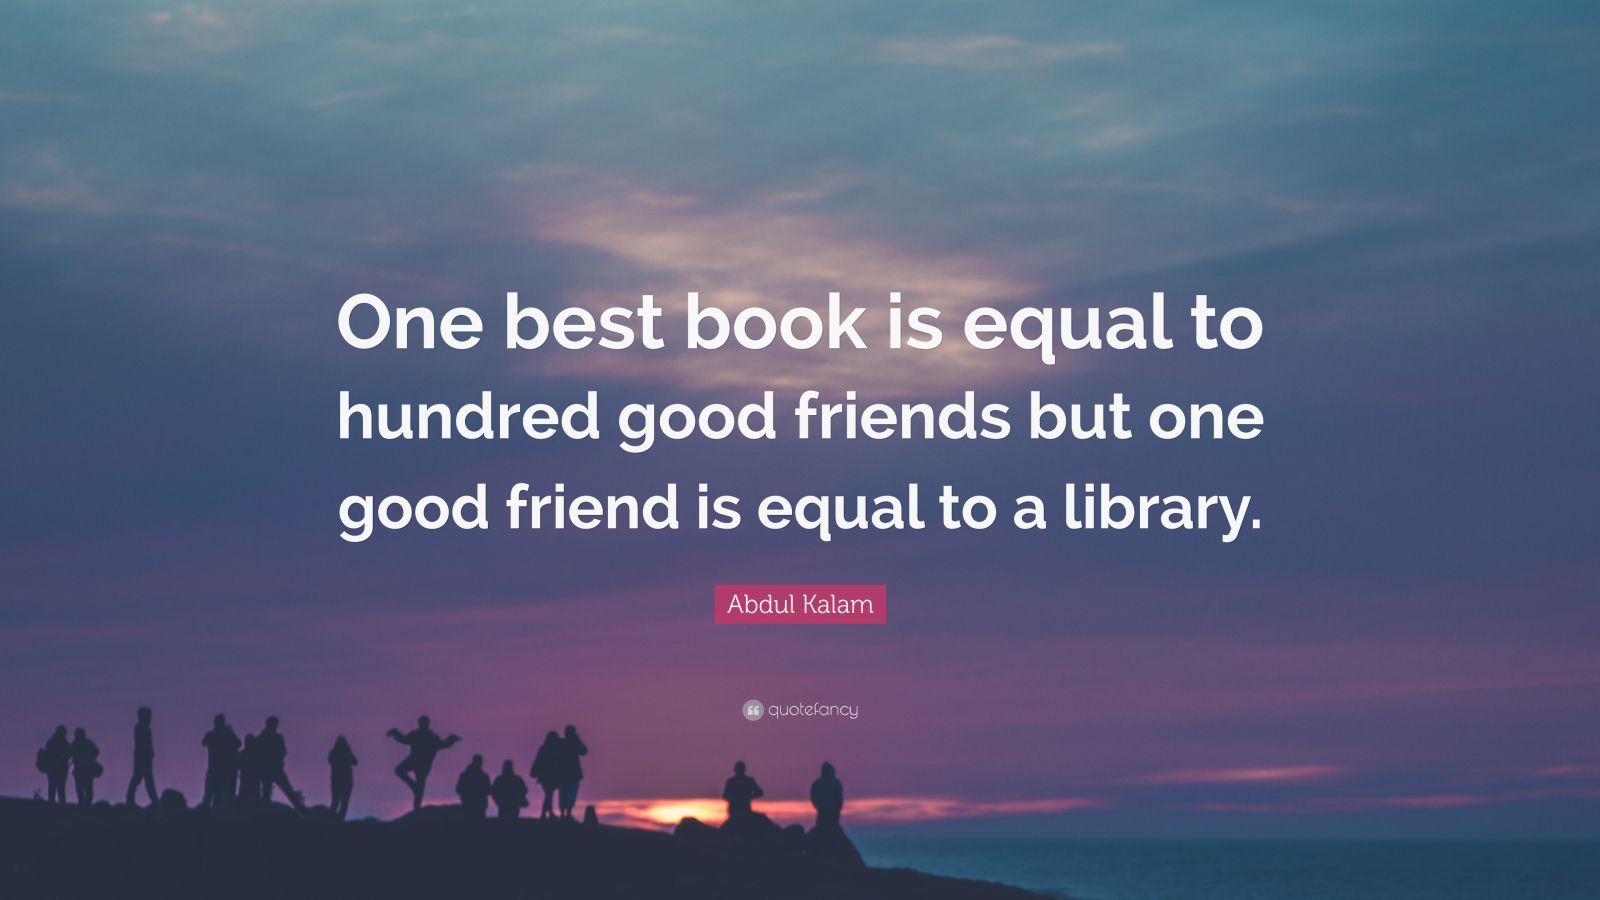 Abdul Kalam Quote: U201cOne Best Book Is Equal To Hundred Good Friends But One